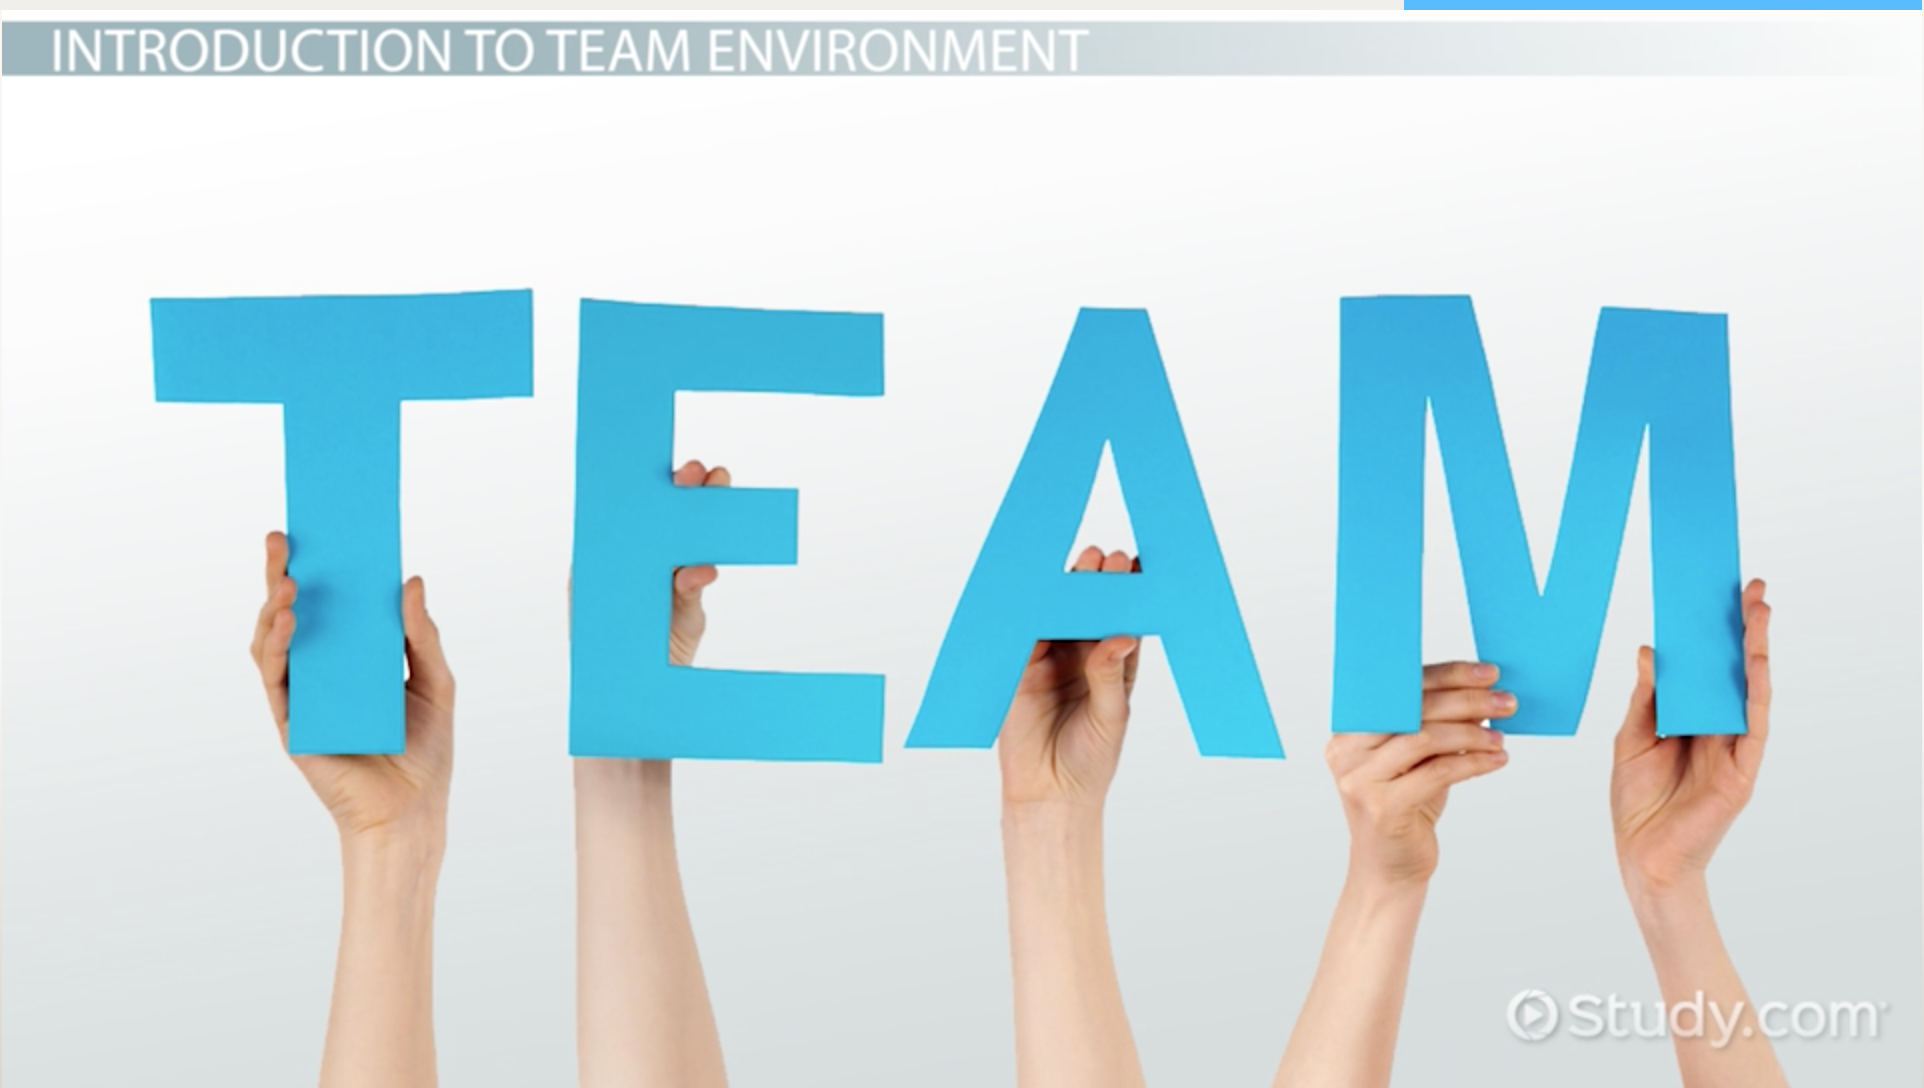 teamwork skills in the workplace definition examples video working in a team environment definition skills